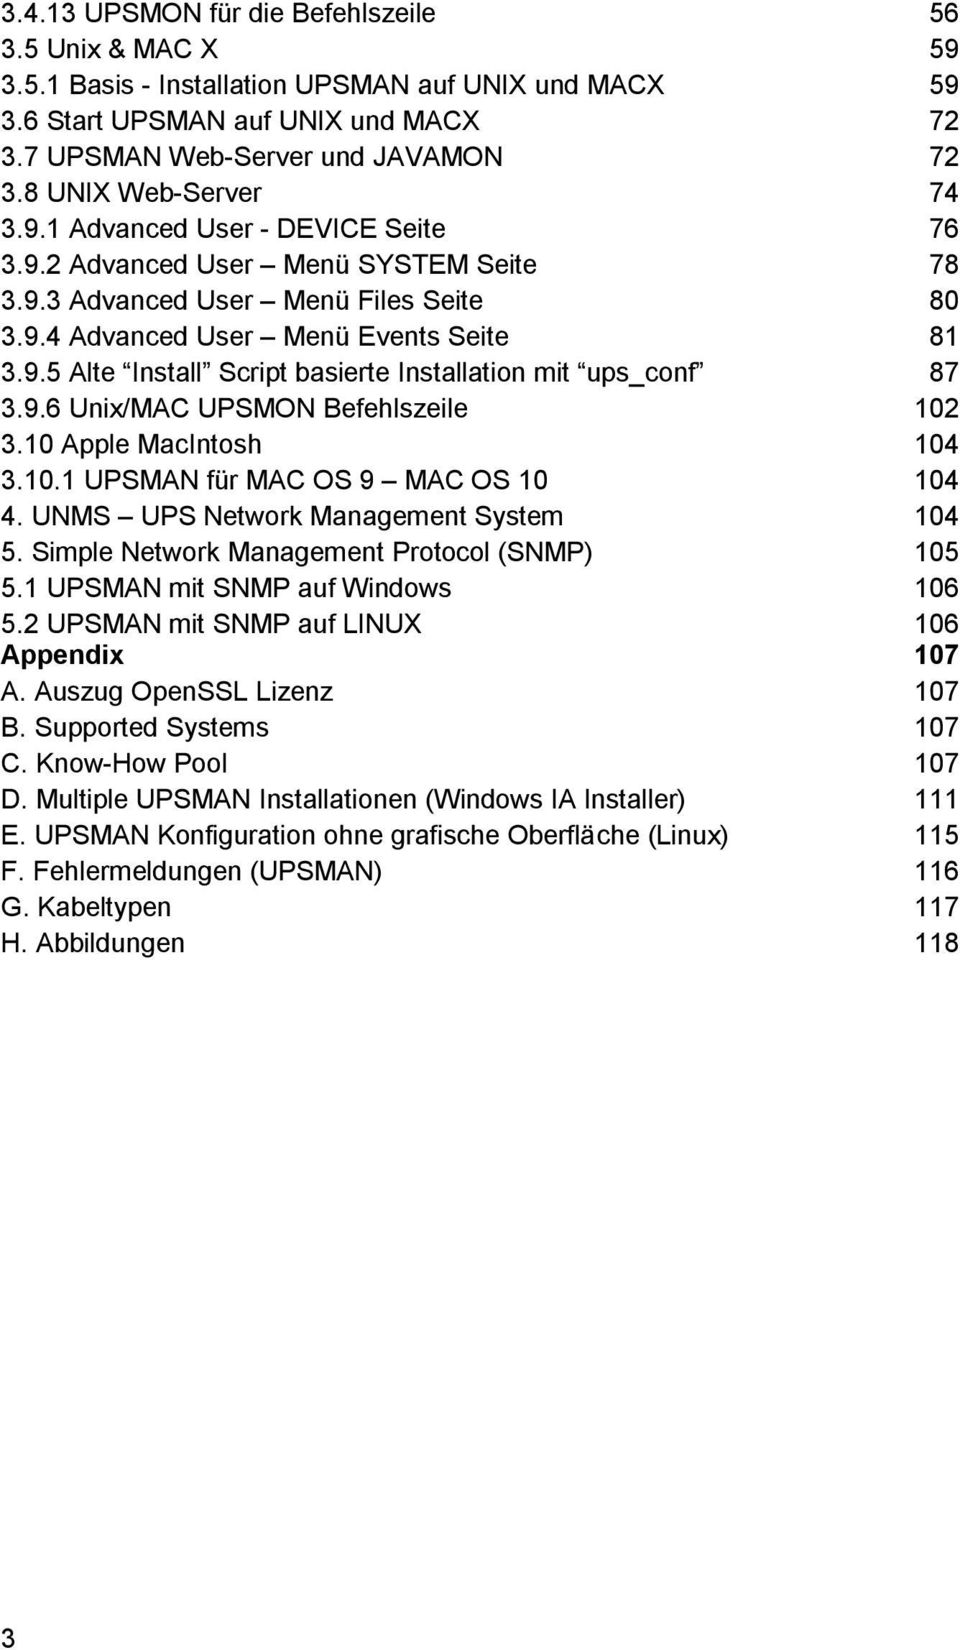 9.6 Unix/MAC UPSMON Befehlszeile 102 3.10 Apple MacIntosh 104 3.10.1 UPSMAN für MAC OS 9 MAC OS 10 104 4. UNMS UPS Network Management System 104 5. Simple Network Management Protocol (SNMP) 105 5.